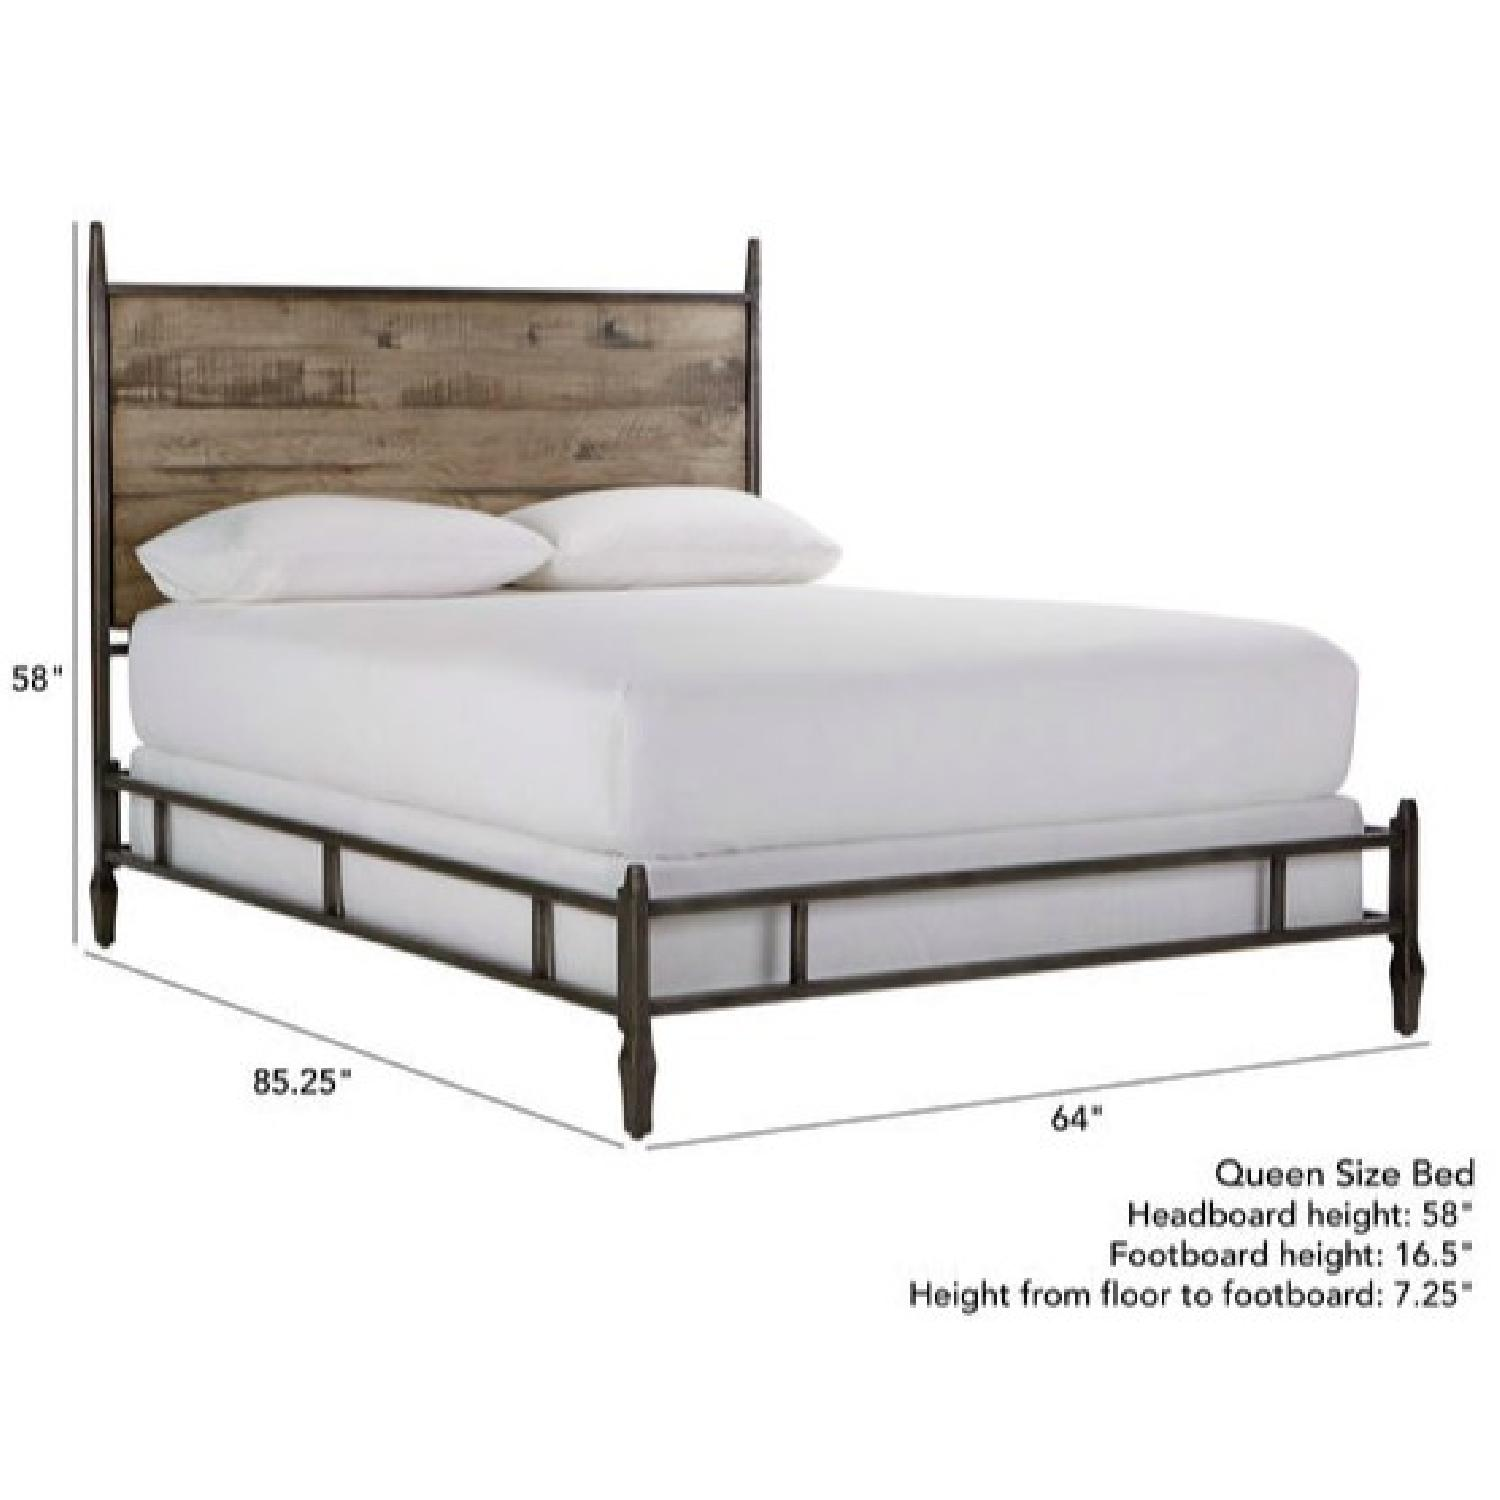 Ethan Allen Lincoln Queen Size Bed Frame w/ Headboard - image-0